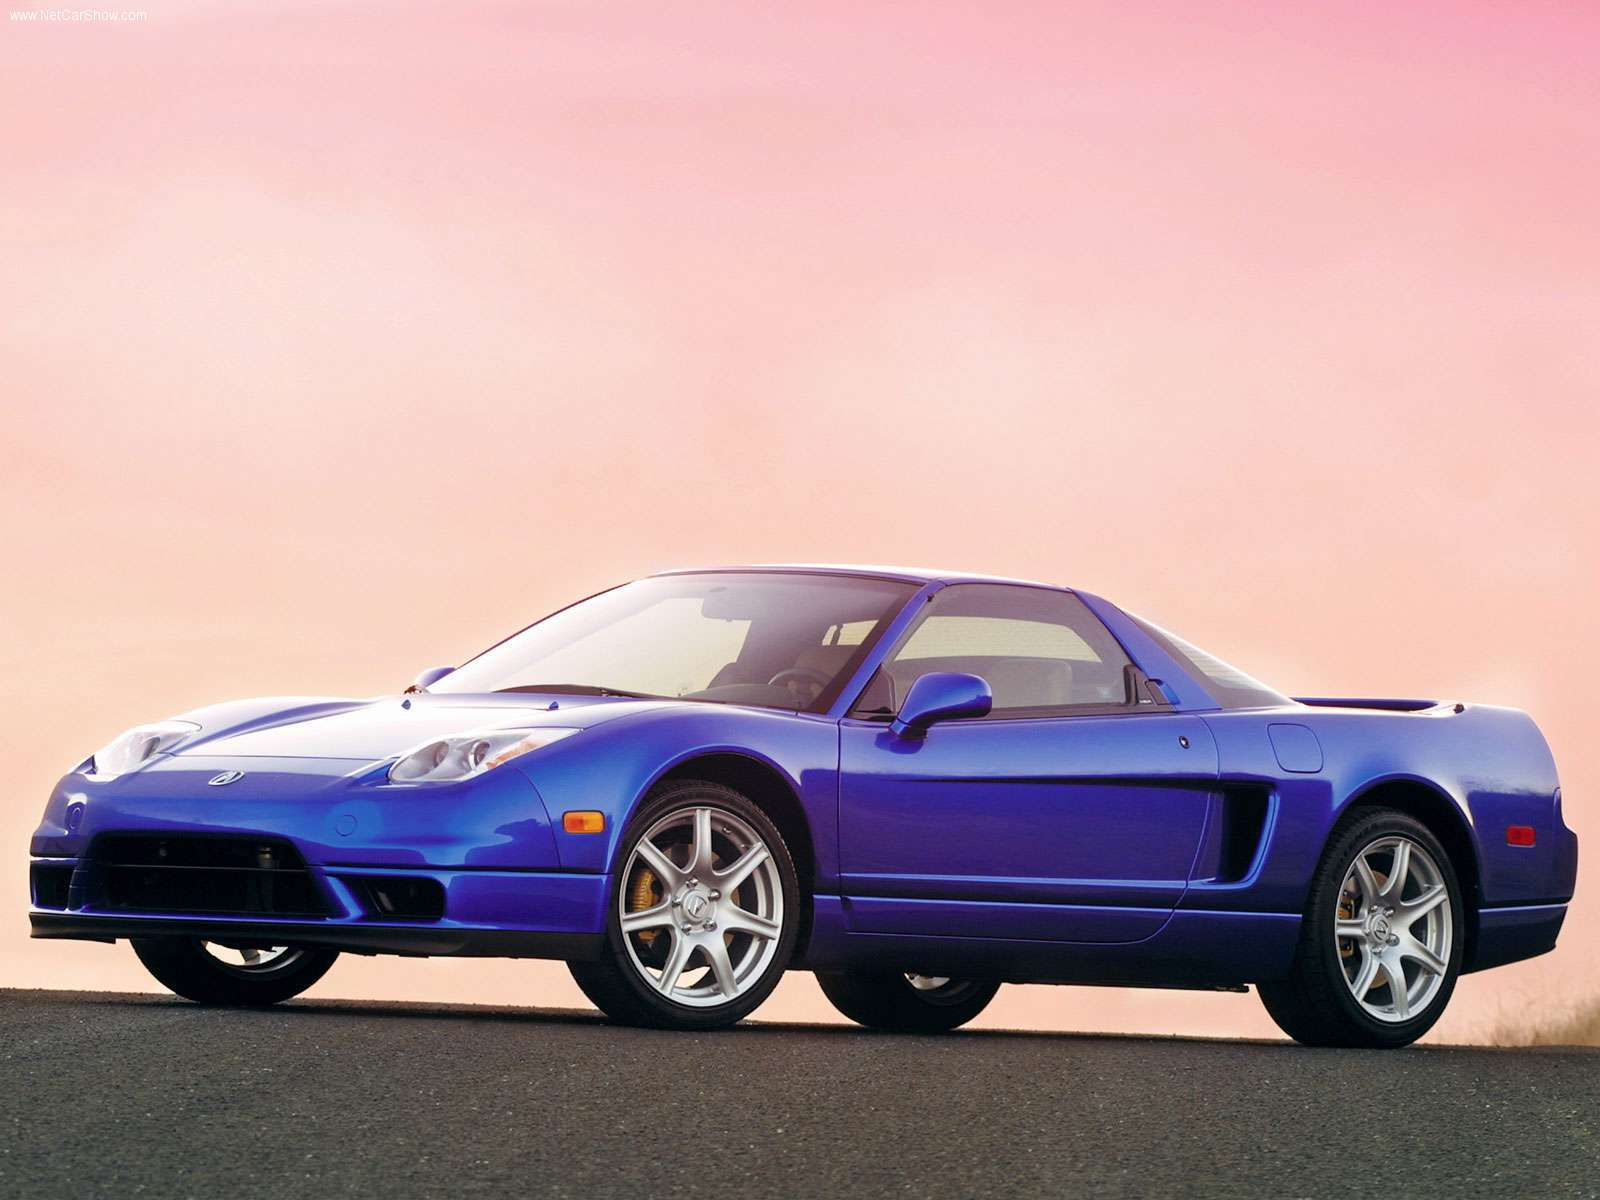 Tuning Acura NSX Coupe Online Accessories And Spare Parts For - Acura nsx parts